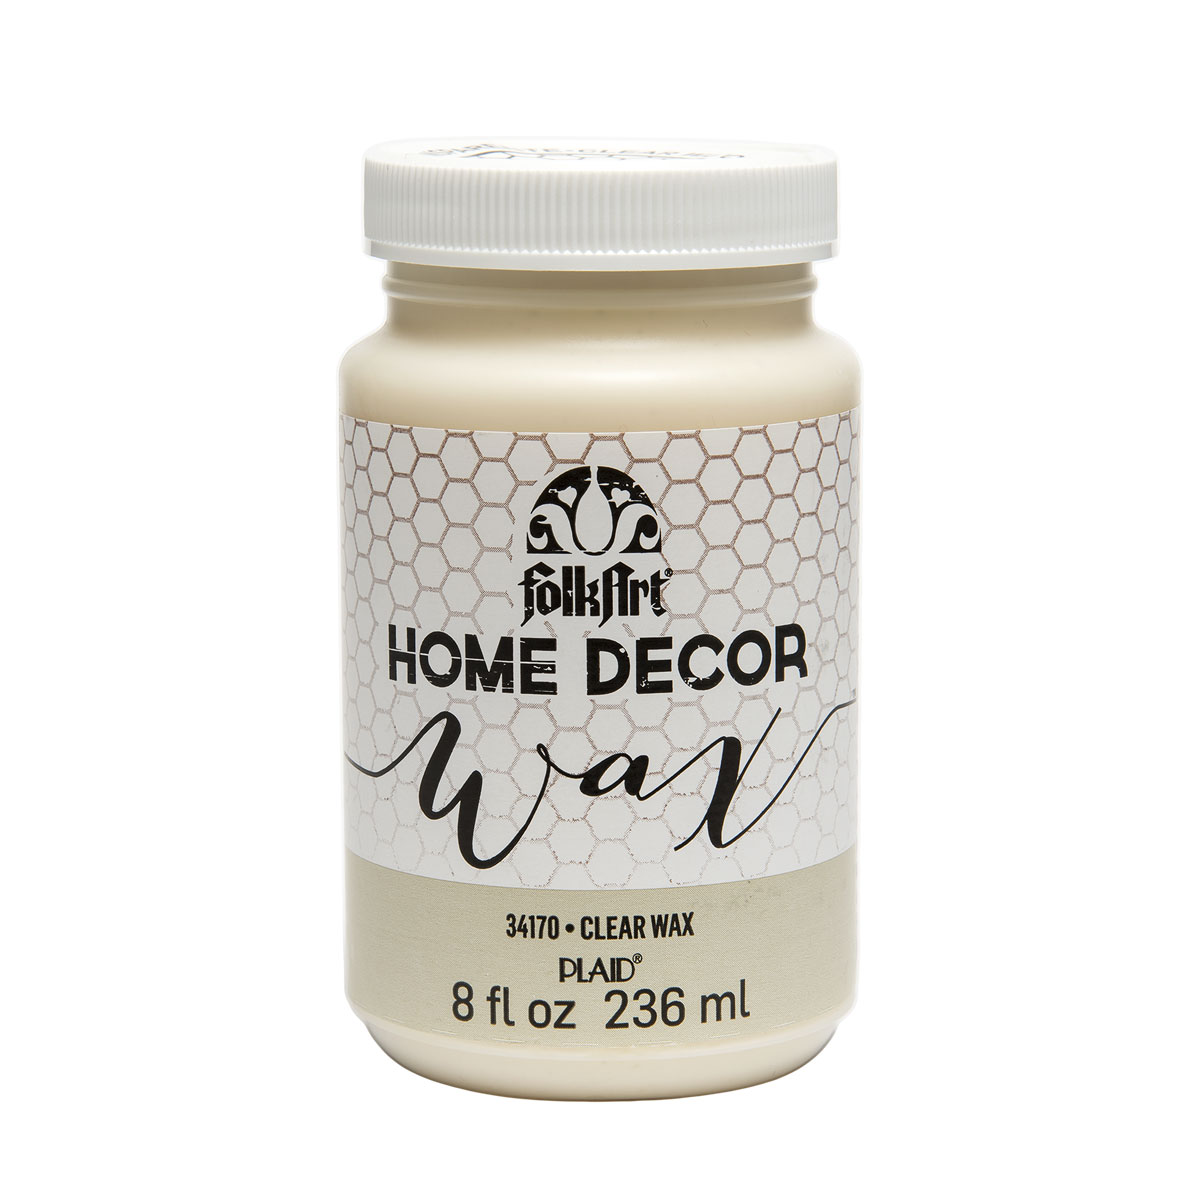 FolkArt ® Home Decor™ Wax - Clear, 8 oz. - 34170